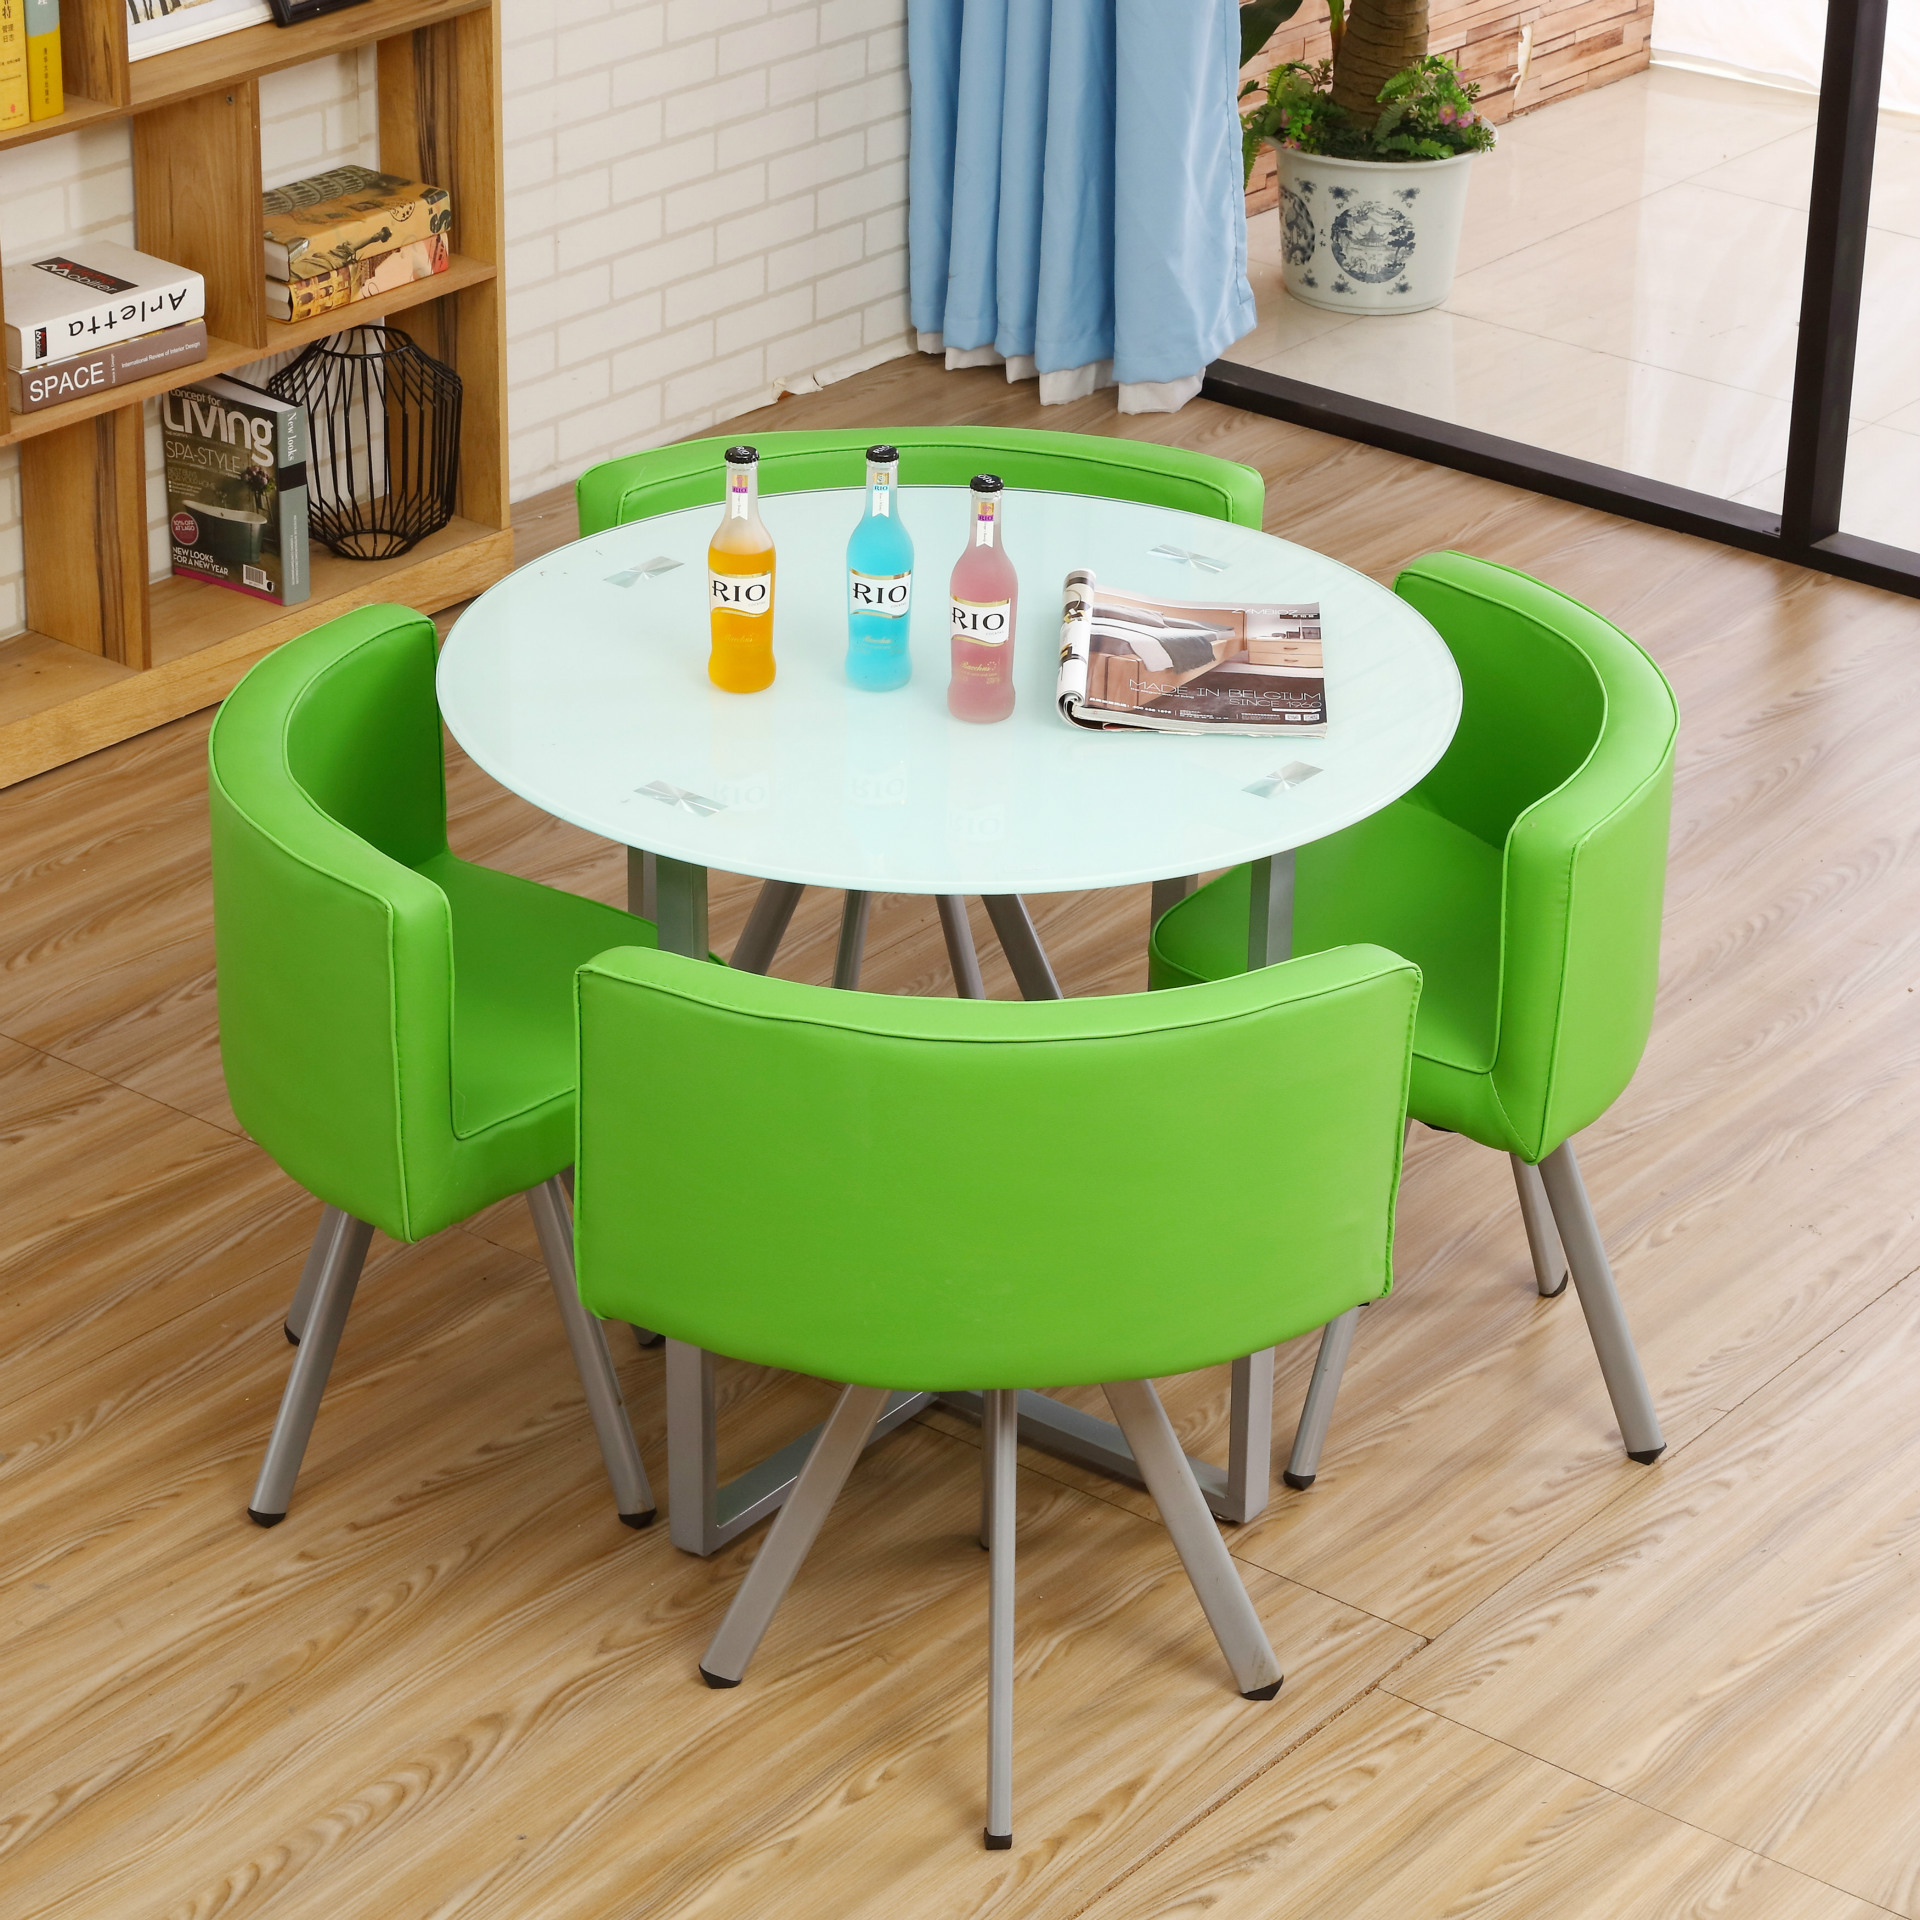 LK631 Ferroalloy+Pu +Toughened Glass Round Desk House Reception Meeting Tea Table Sets Fashion Design Chair Sets 4 Chair 1 Table glass dinner table milk tea shop reception desk and chair small family dining table